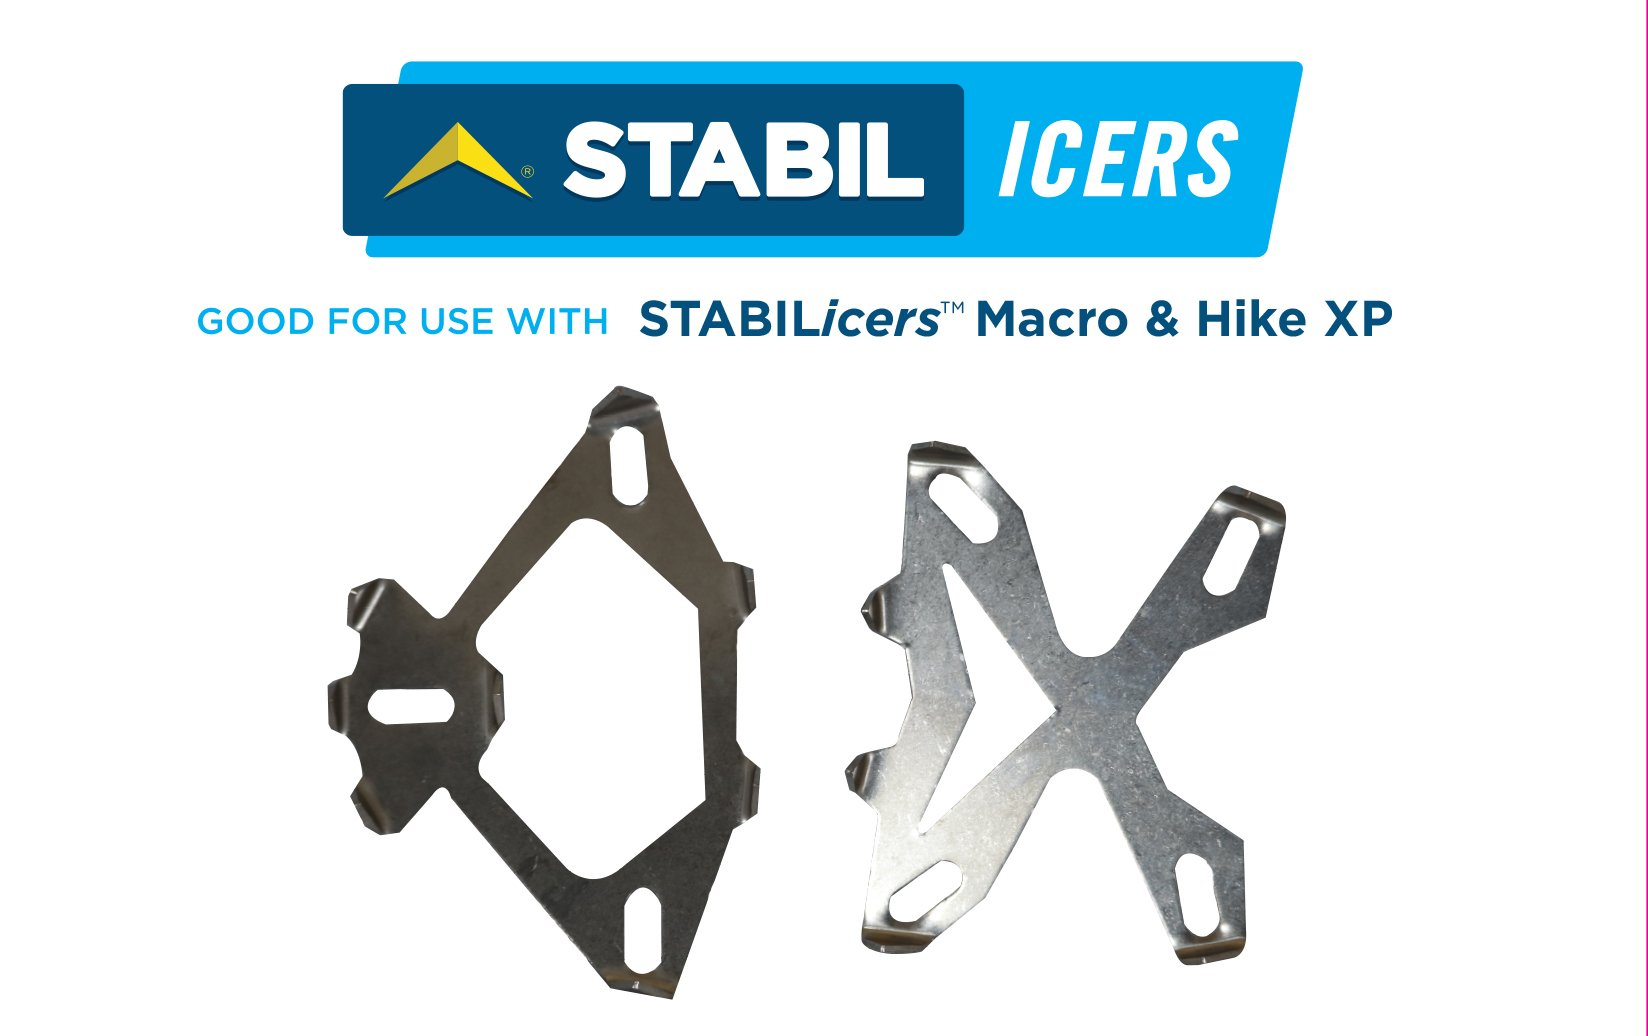 STABILicers Macro Cleat Pack 1/2'' Stainless Steel Ice Cleats For Snow, Ice, Rain, Outdoors, Winter, Slippery Terrain/Trails, Replacement Cleats Compatible with STABILicers Hike XP and Hike Macro, OS